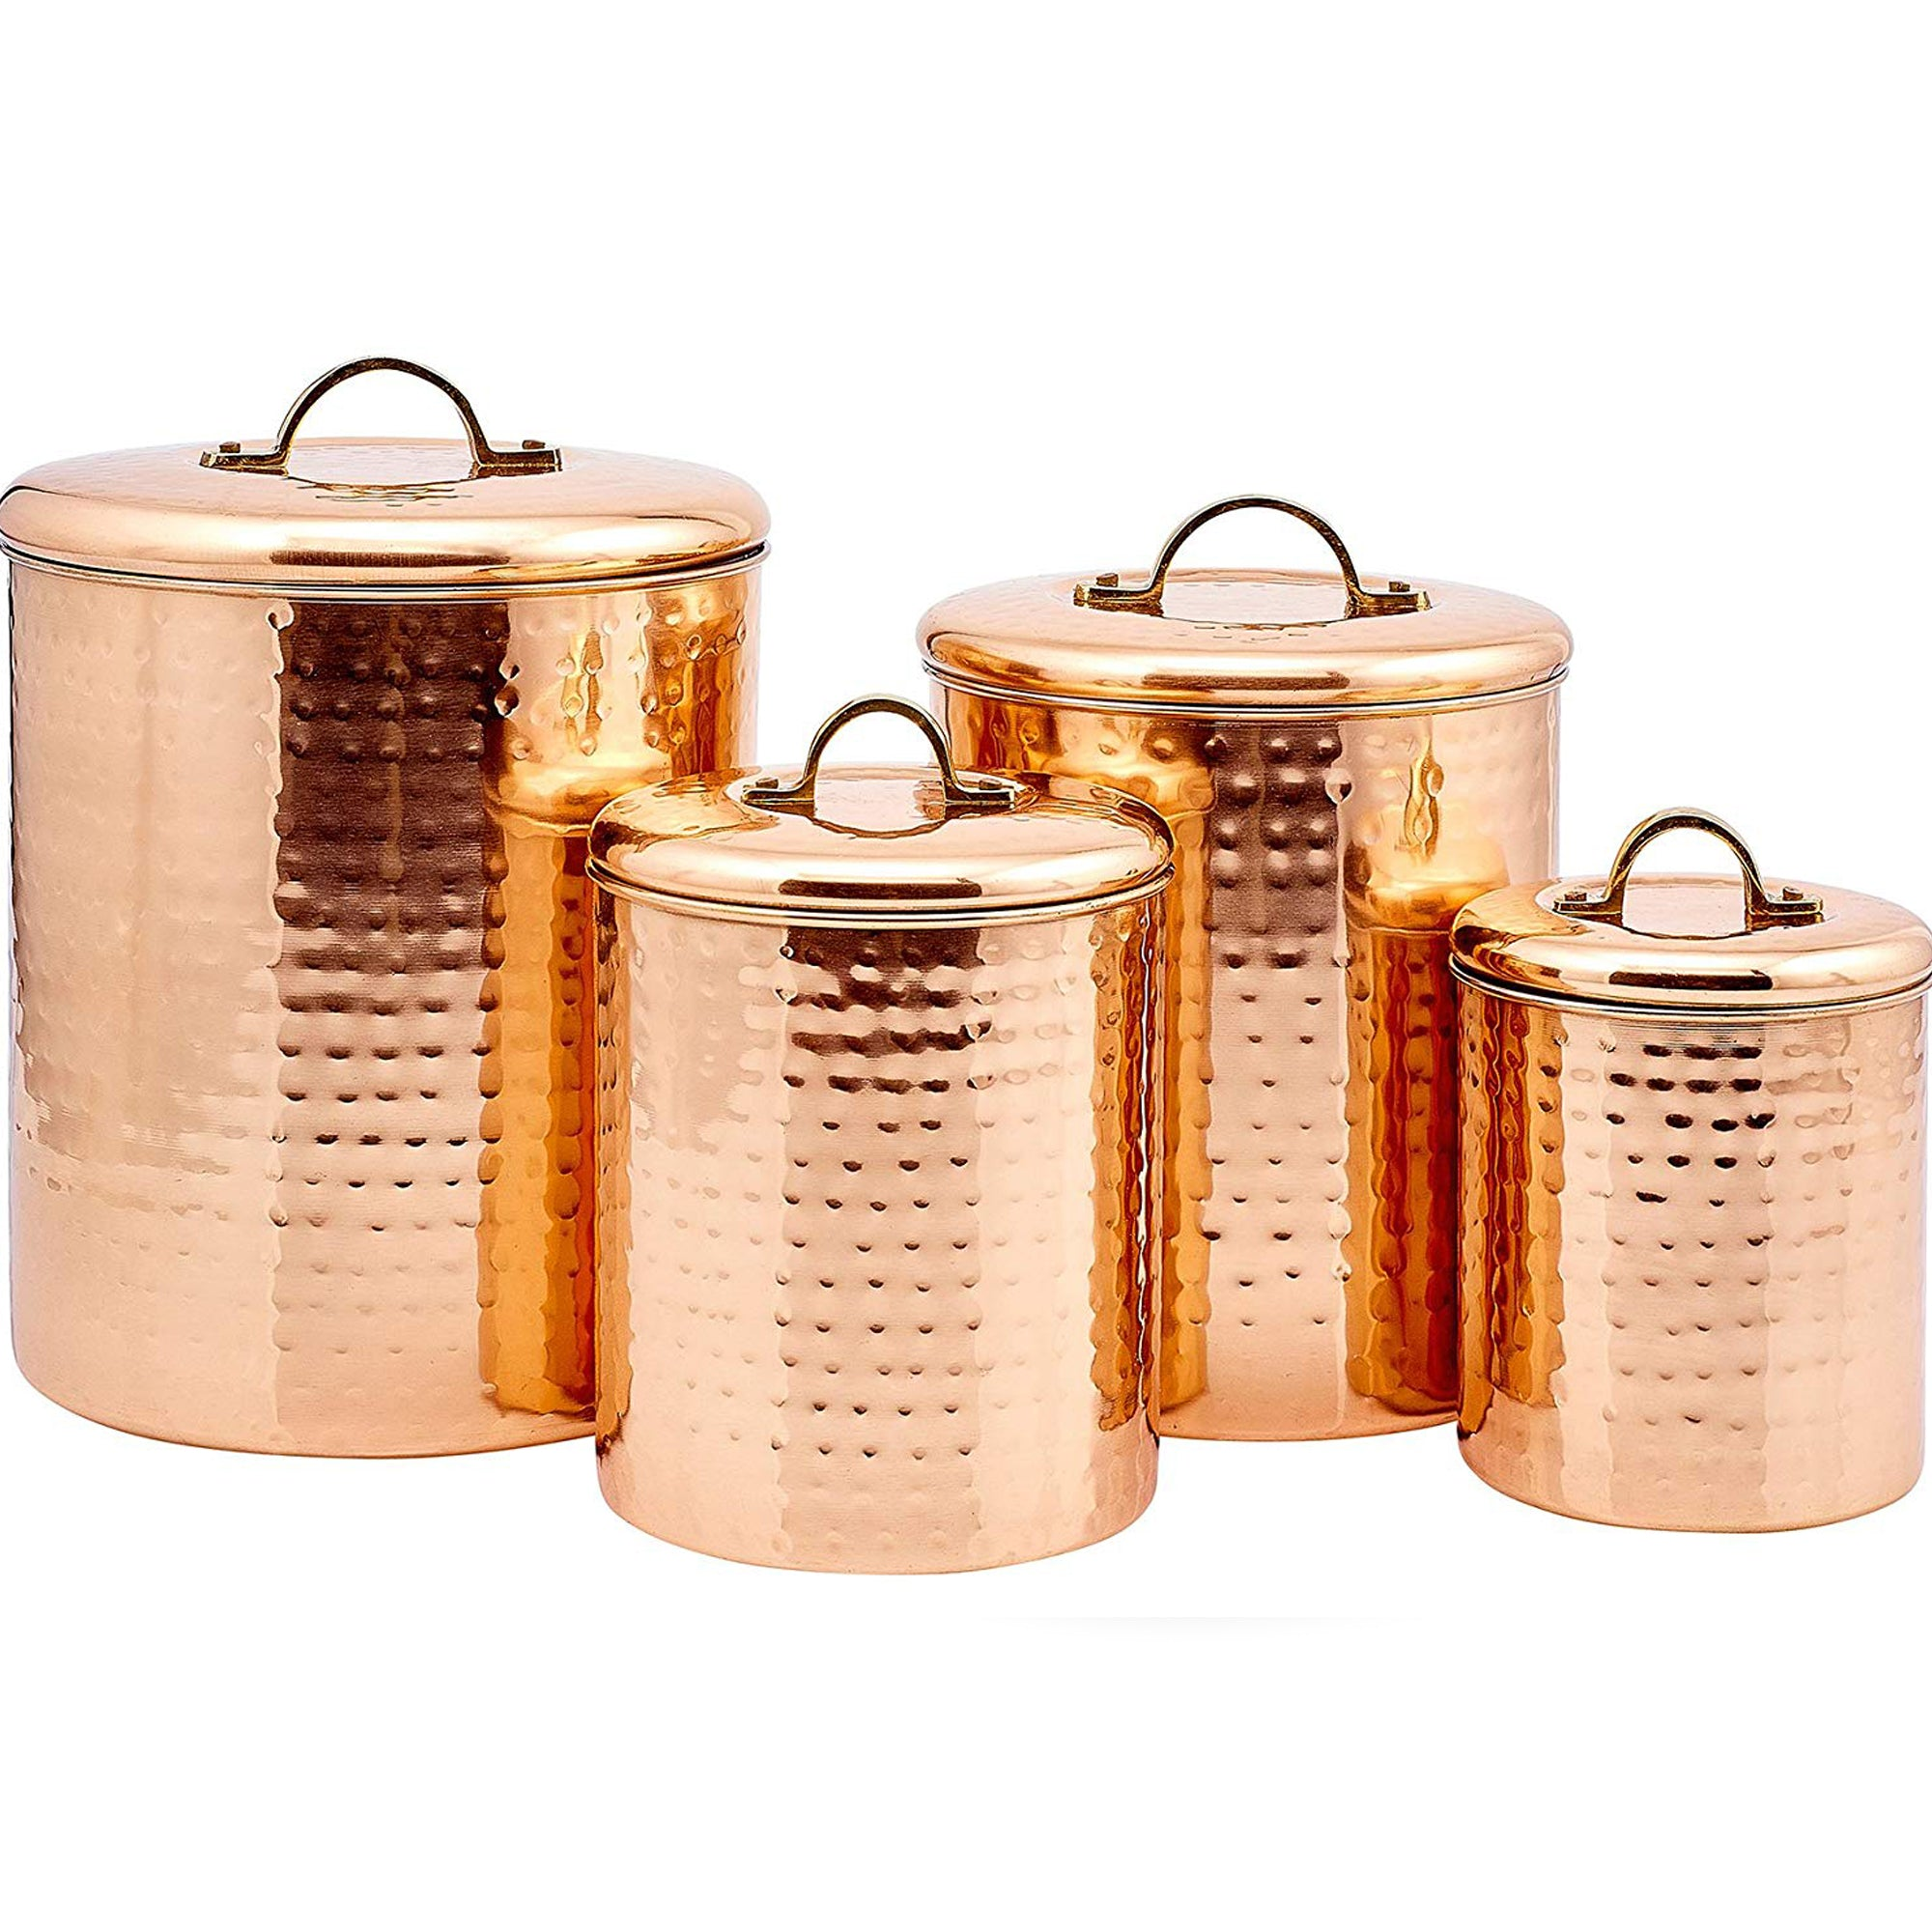 HAMMERED CANISTERS ANTIQUE COPPER - Nusteel